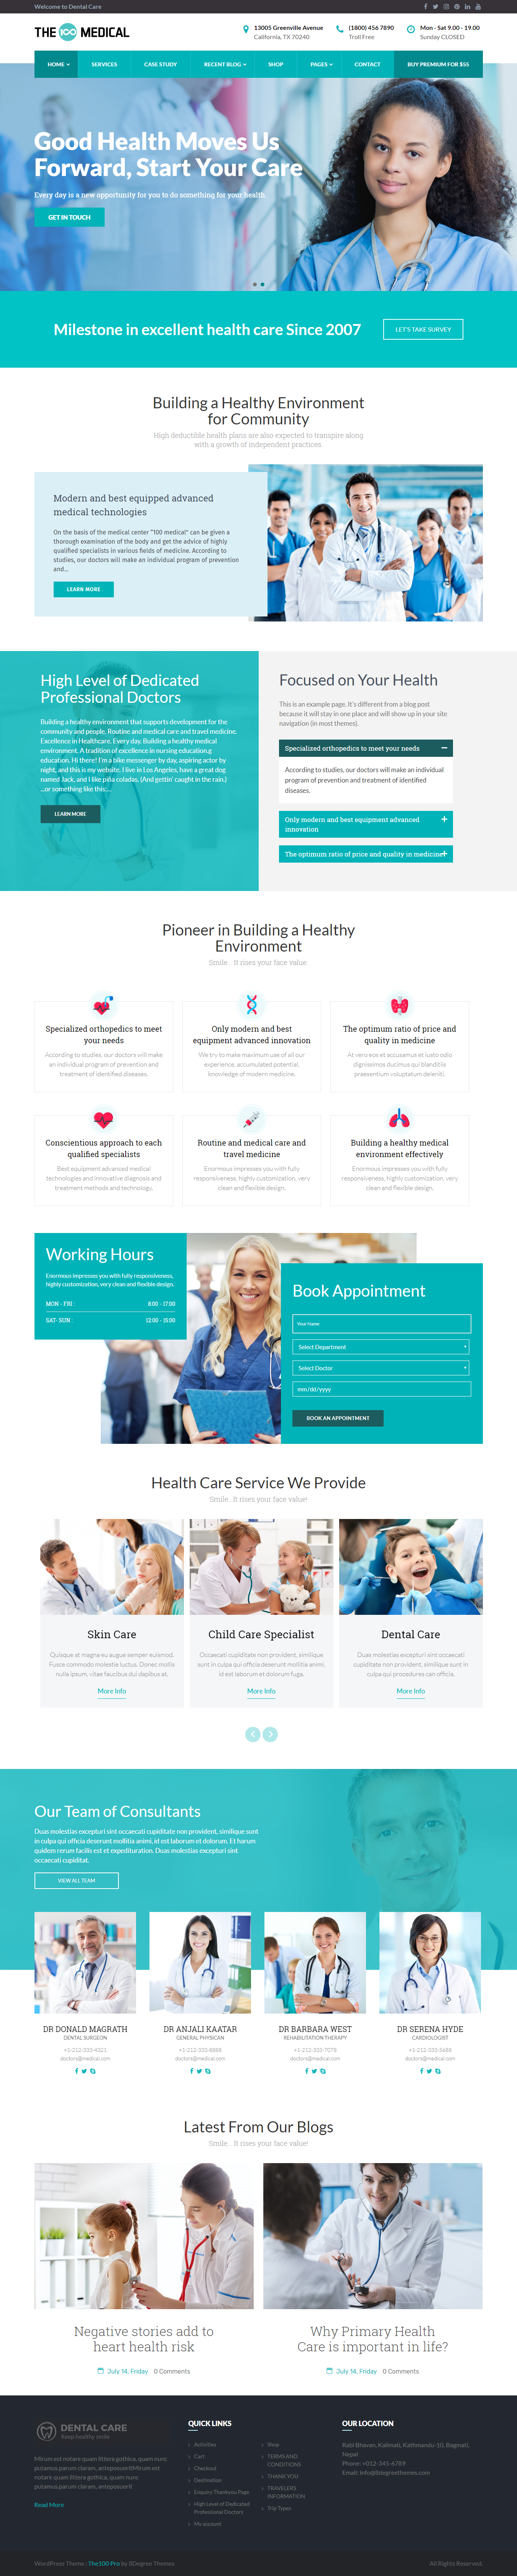 The100 Pro- Best Premium Hospital WordPress Theme